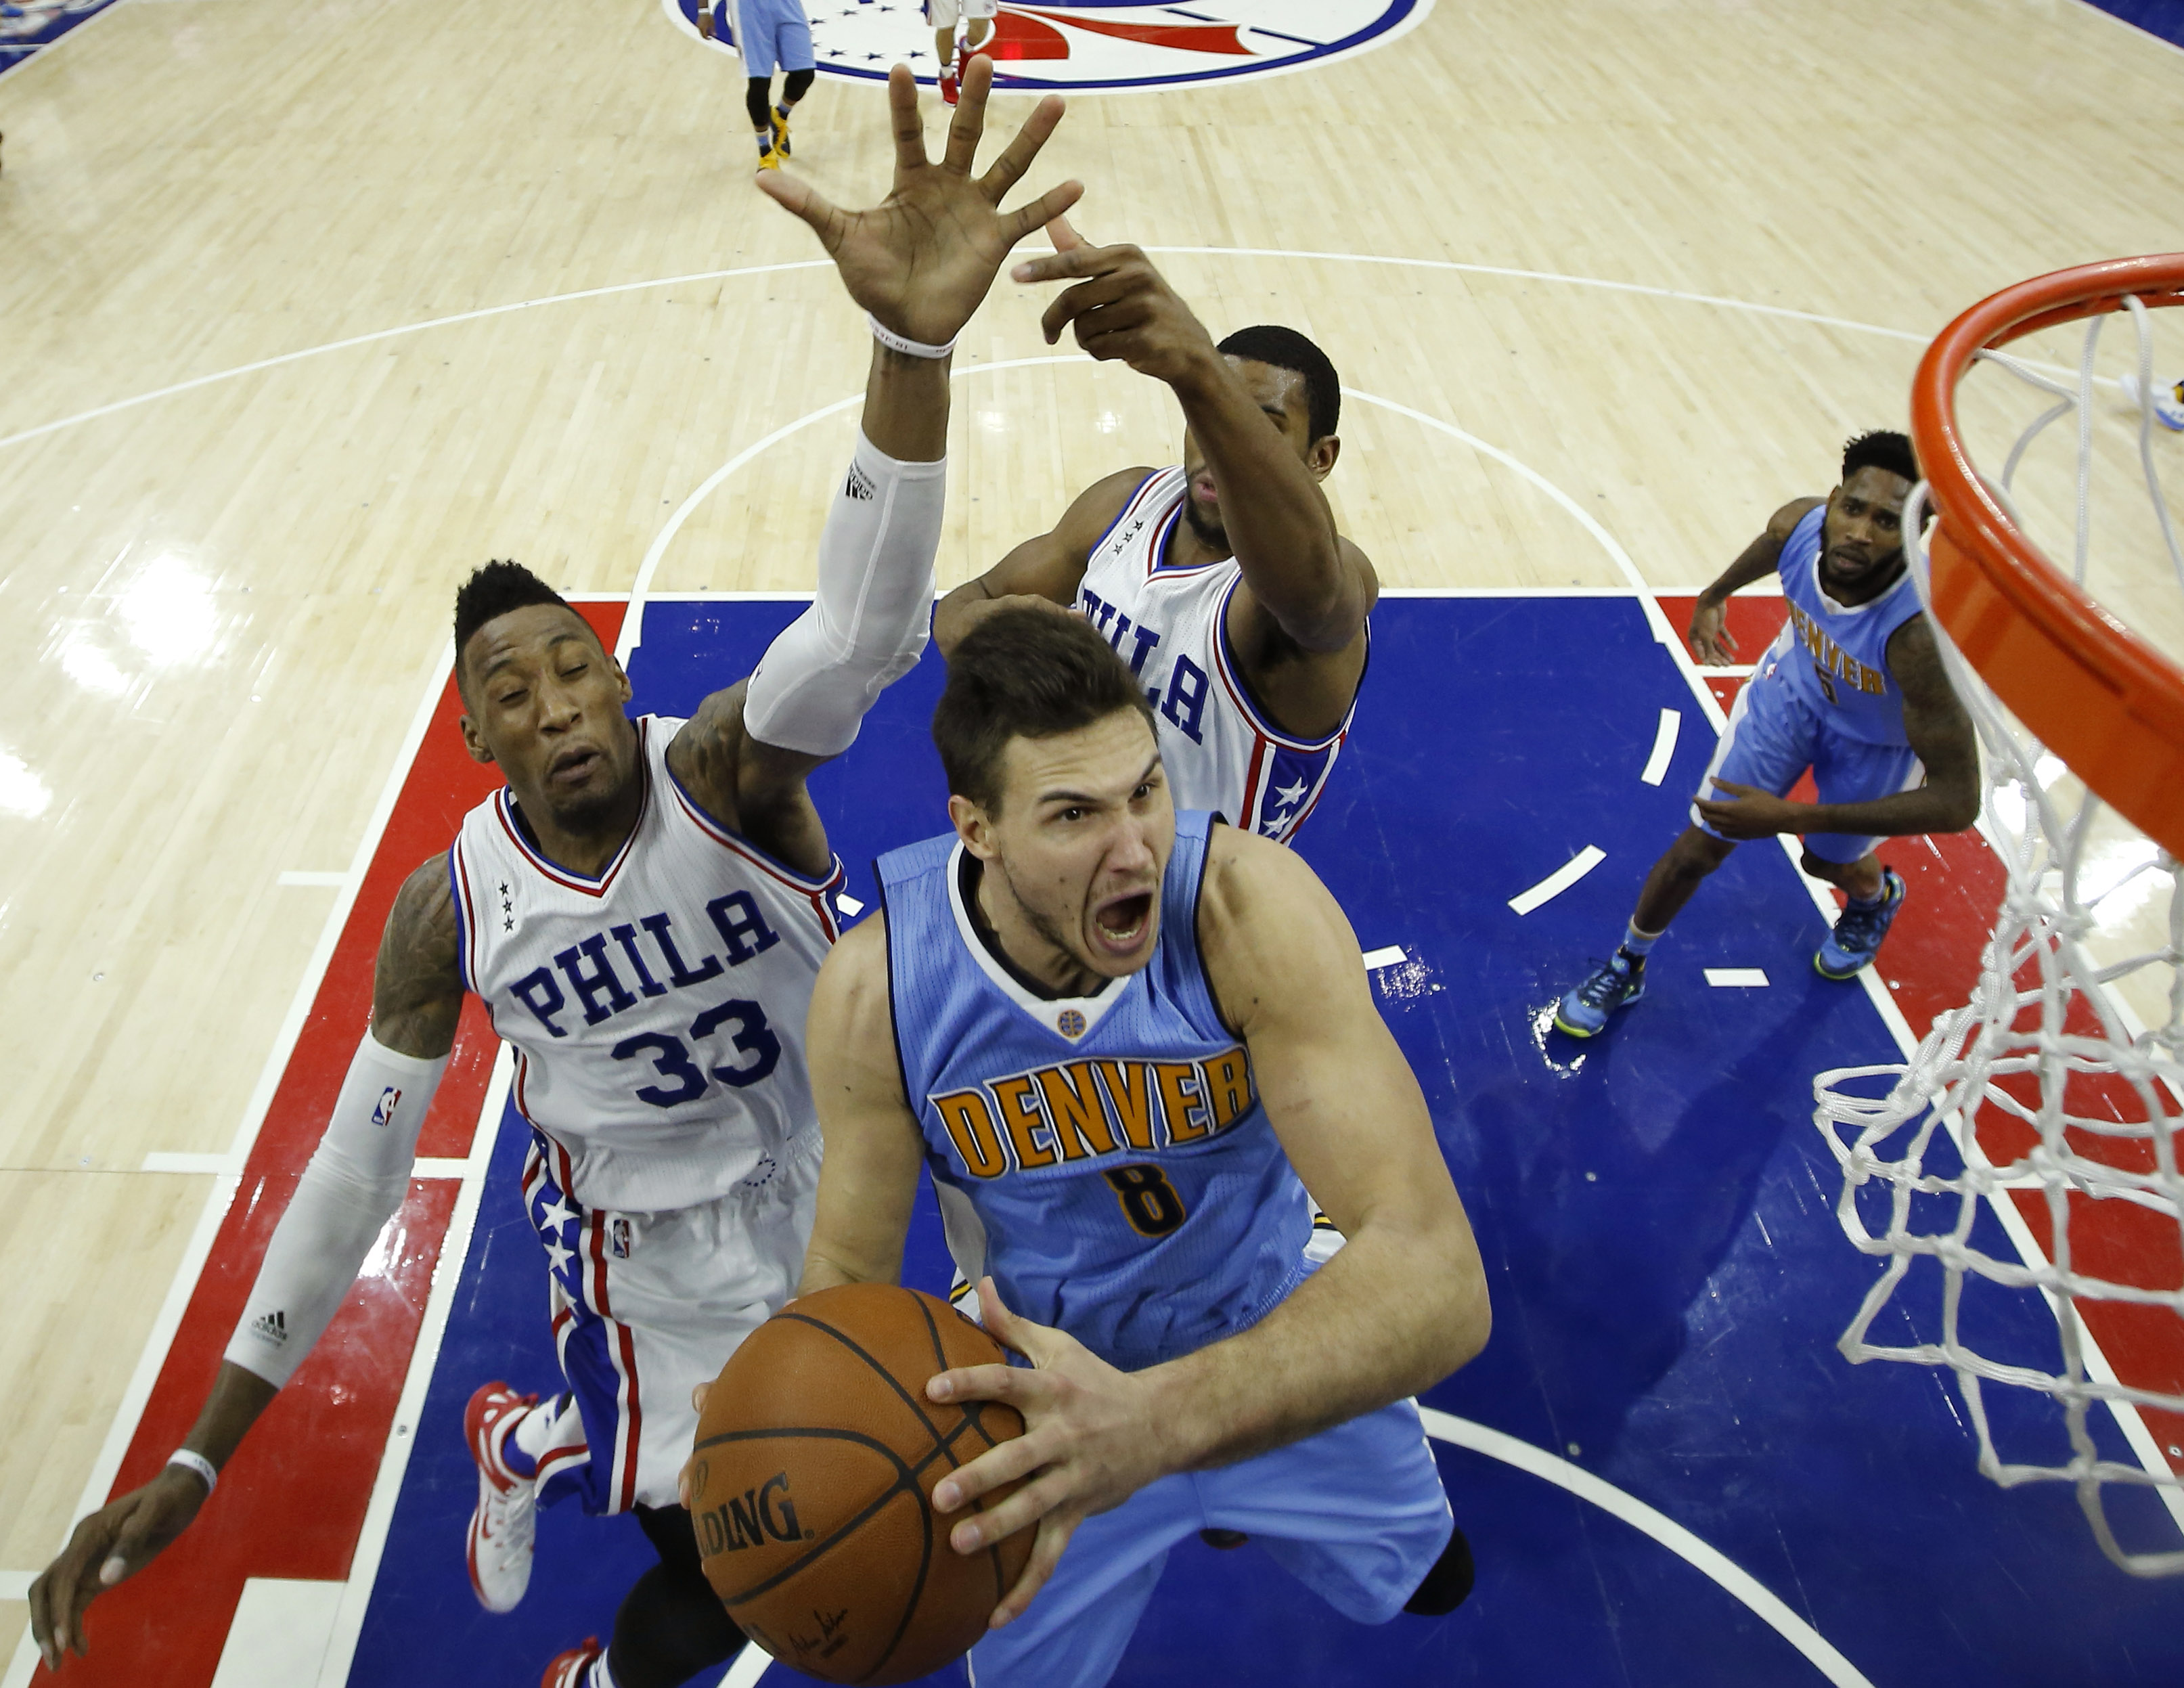 Denver Nuggets' Danilo Gallinari, center, goes up for a shot against Philadelphia 76ers' Robert Covington, left, and Hollis Thompson during the second half of an NBA basketball game, Saturday, Dec. 5, 2015, in Philadelphia. Denver won 108-15. (AP Photo/Ma